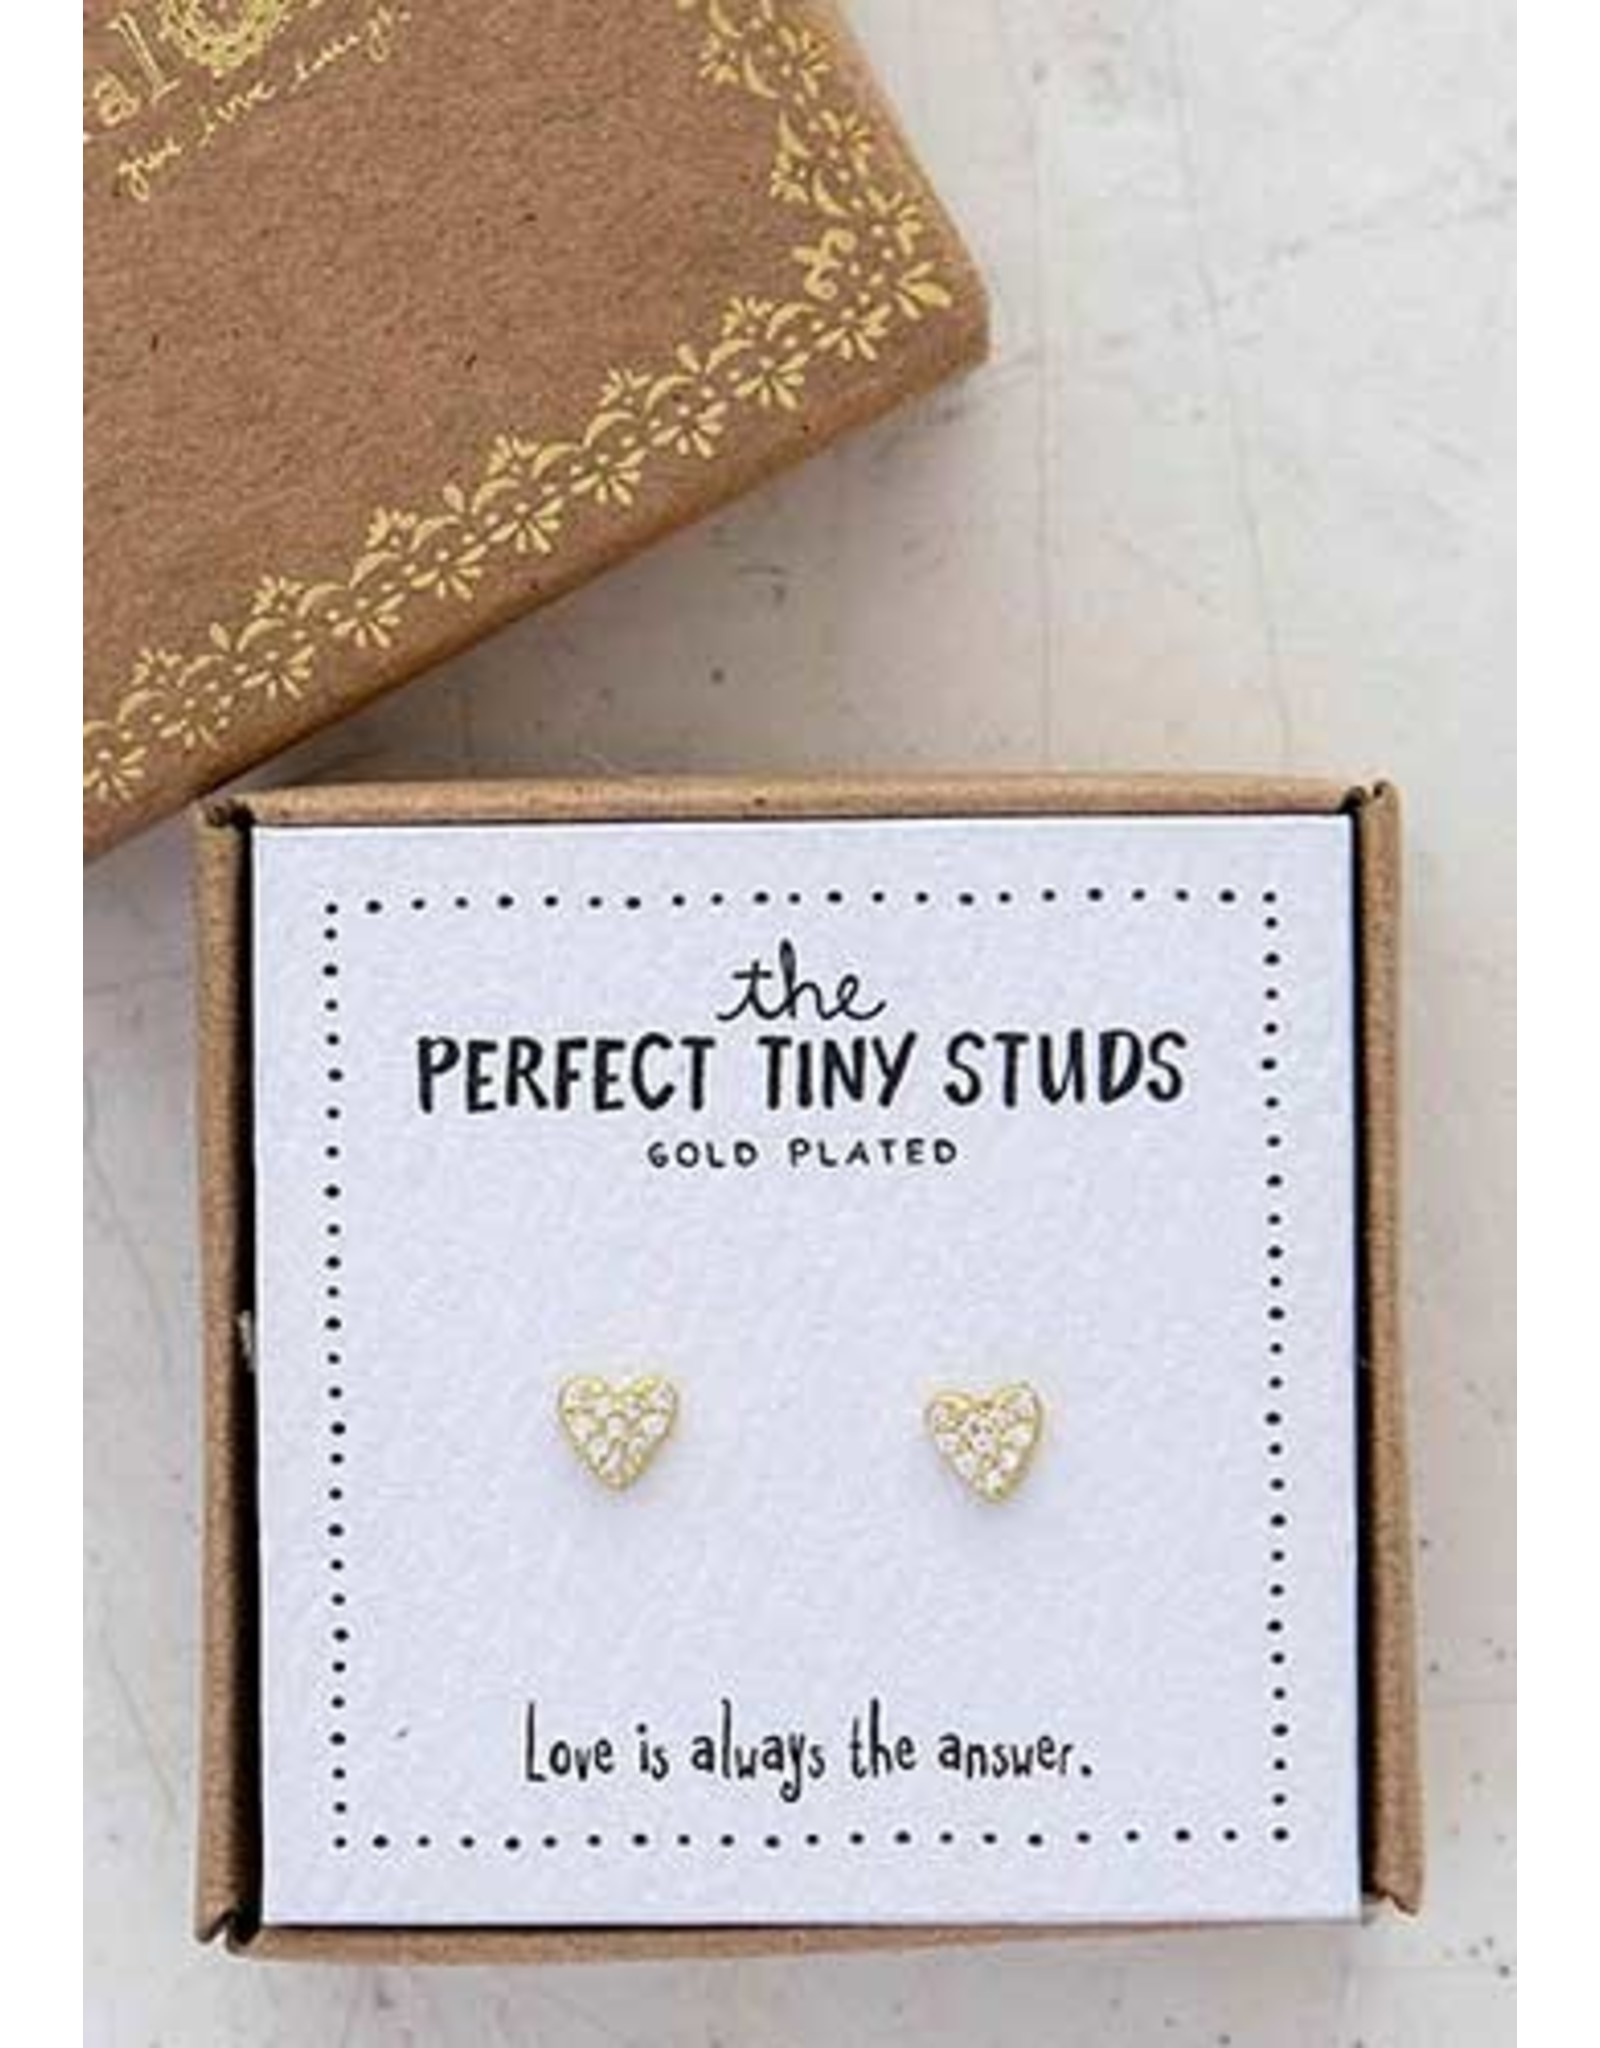 Natural LIfe Tiny Stud Earrings, Heart Perfect